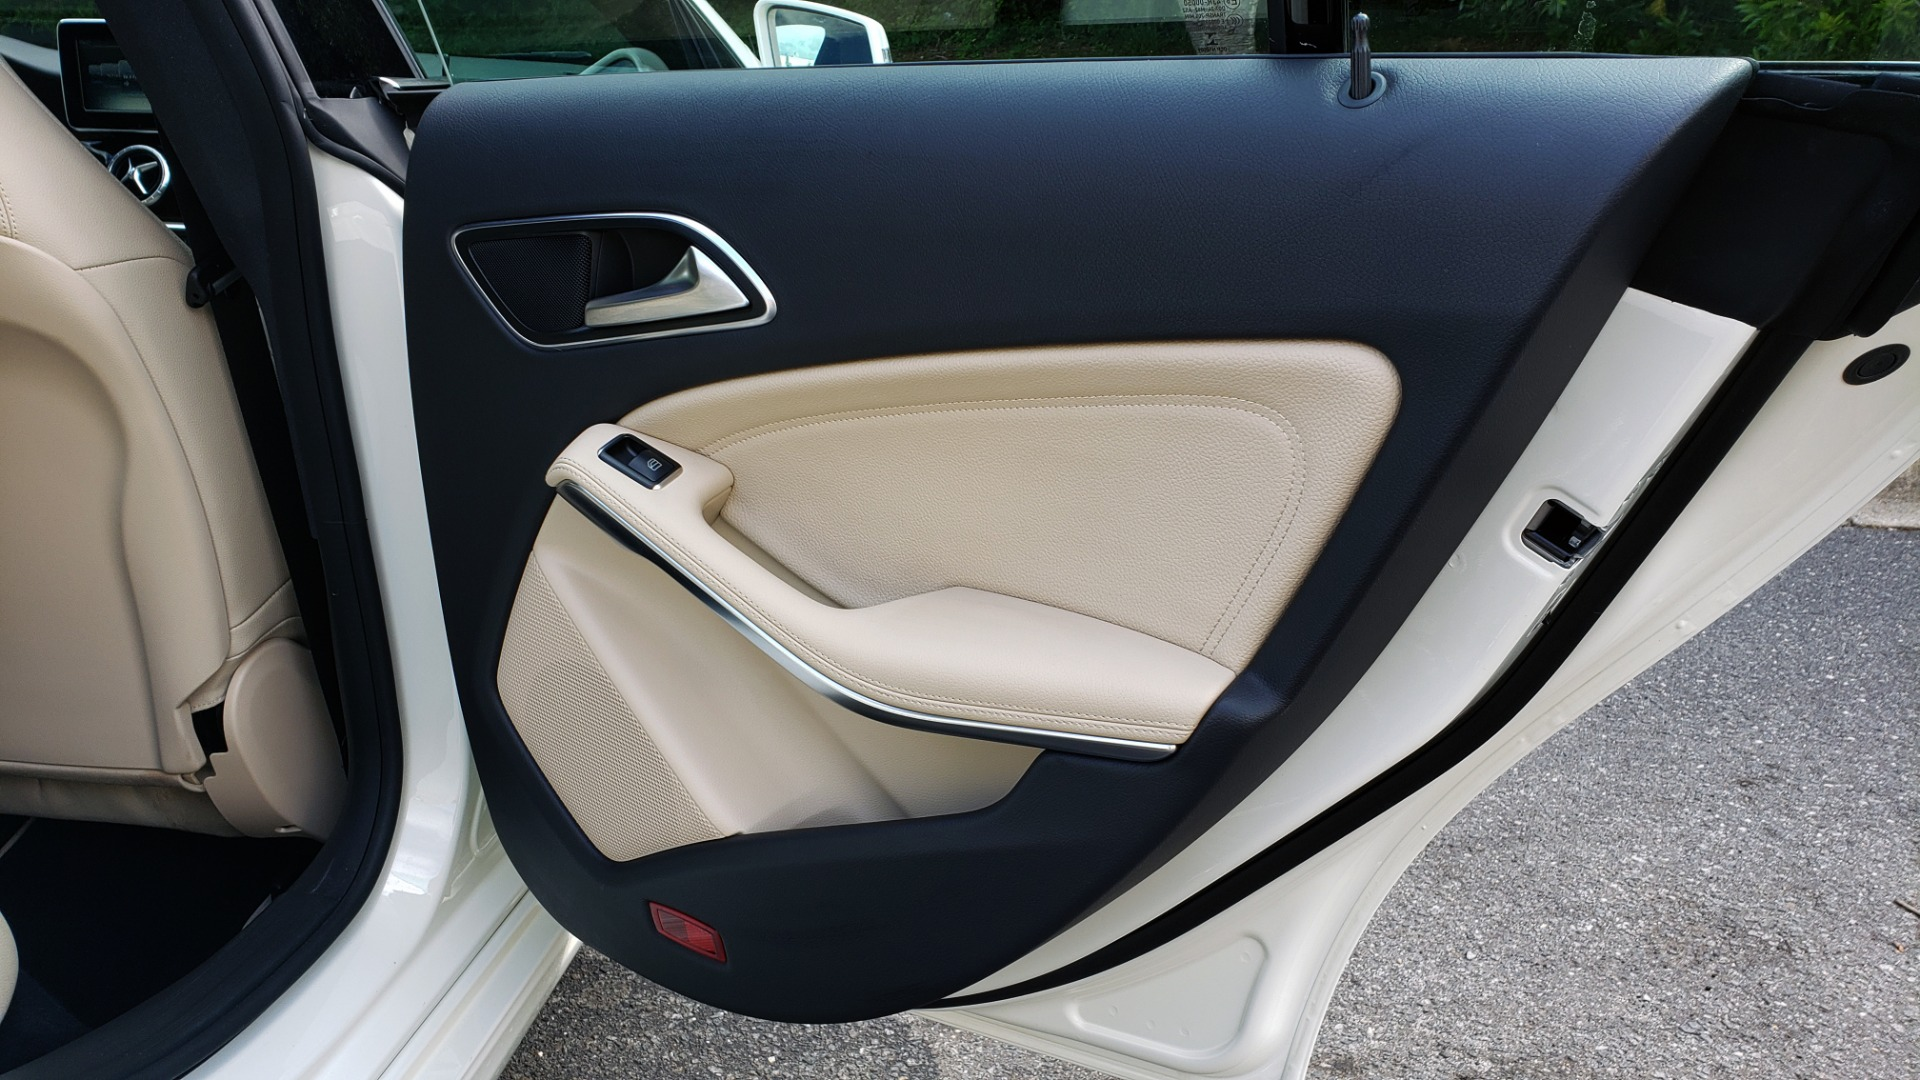 Used 2015 Mercedes-Benz CLA-Class CLA250 / FWD / SUNROOF / SPORT SUSP / CAMERA for sale Sold at Formula One Imports in Charlotte NC 28227 61